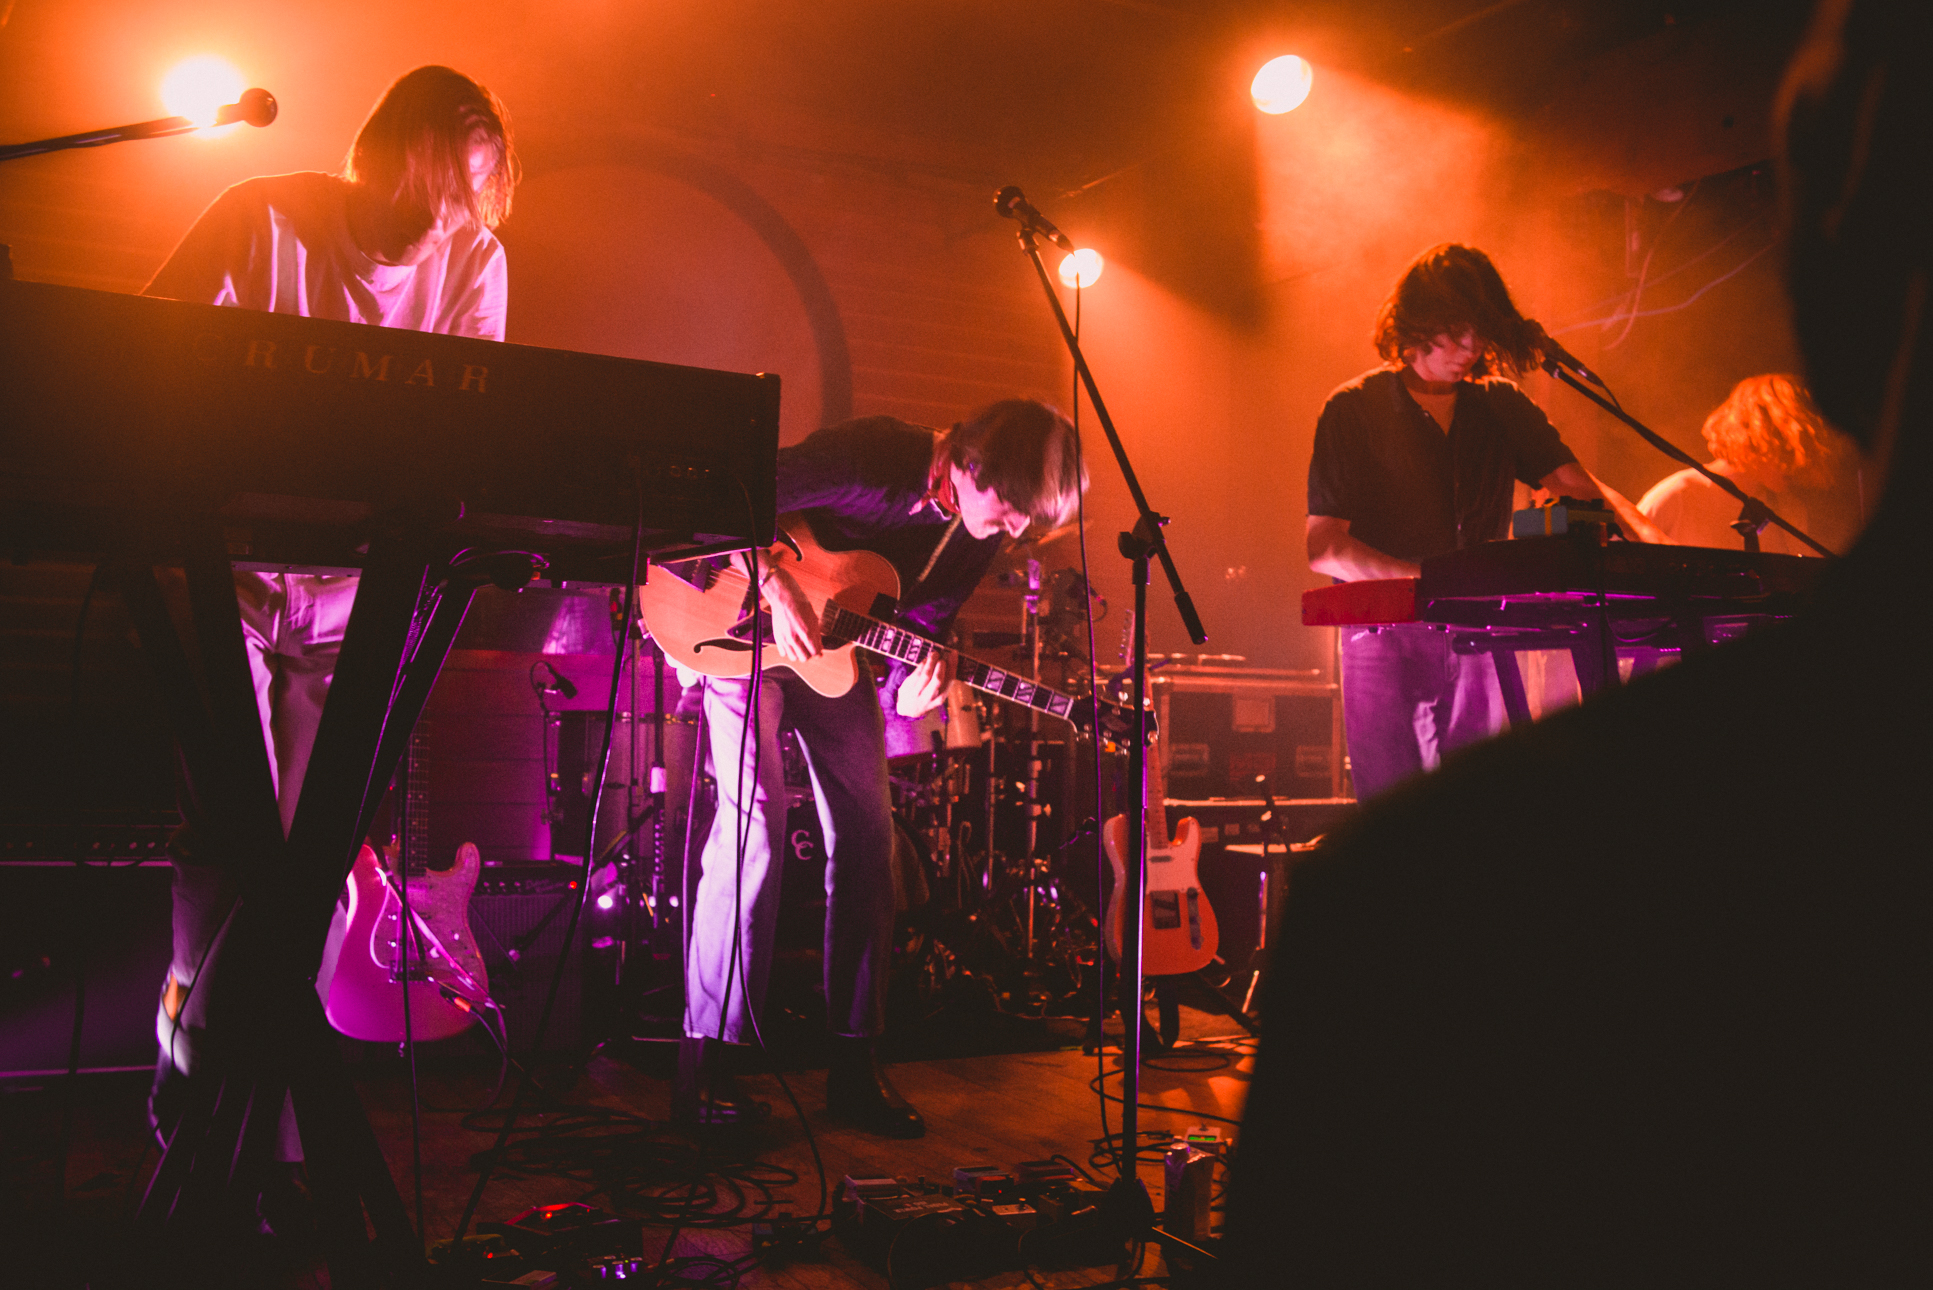 Parcels-FortuneSoundClub-Vancouver-March5th_ALICE HADDEN_DSC_1608.jpg